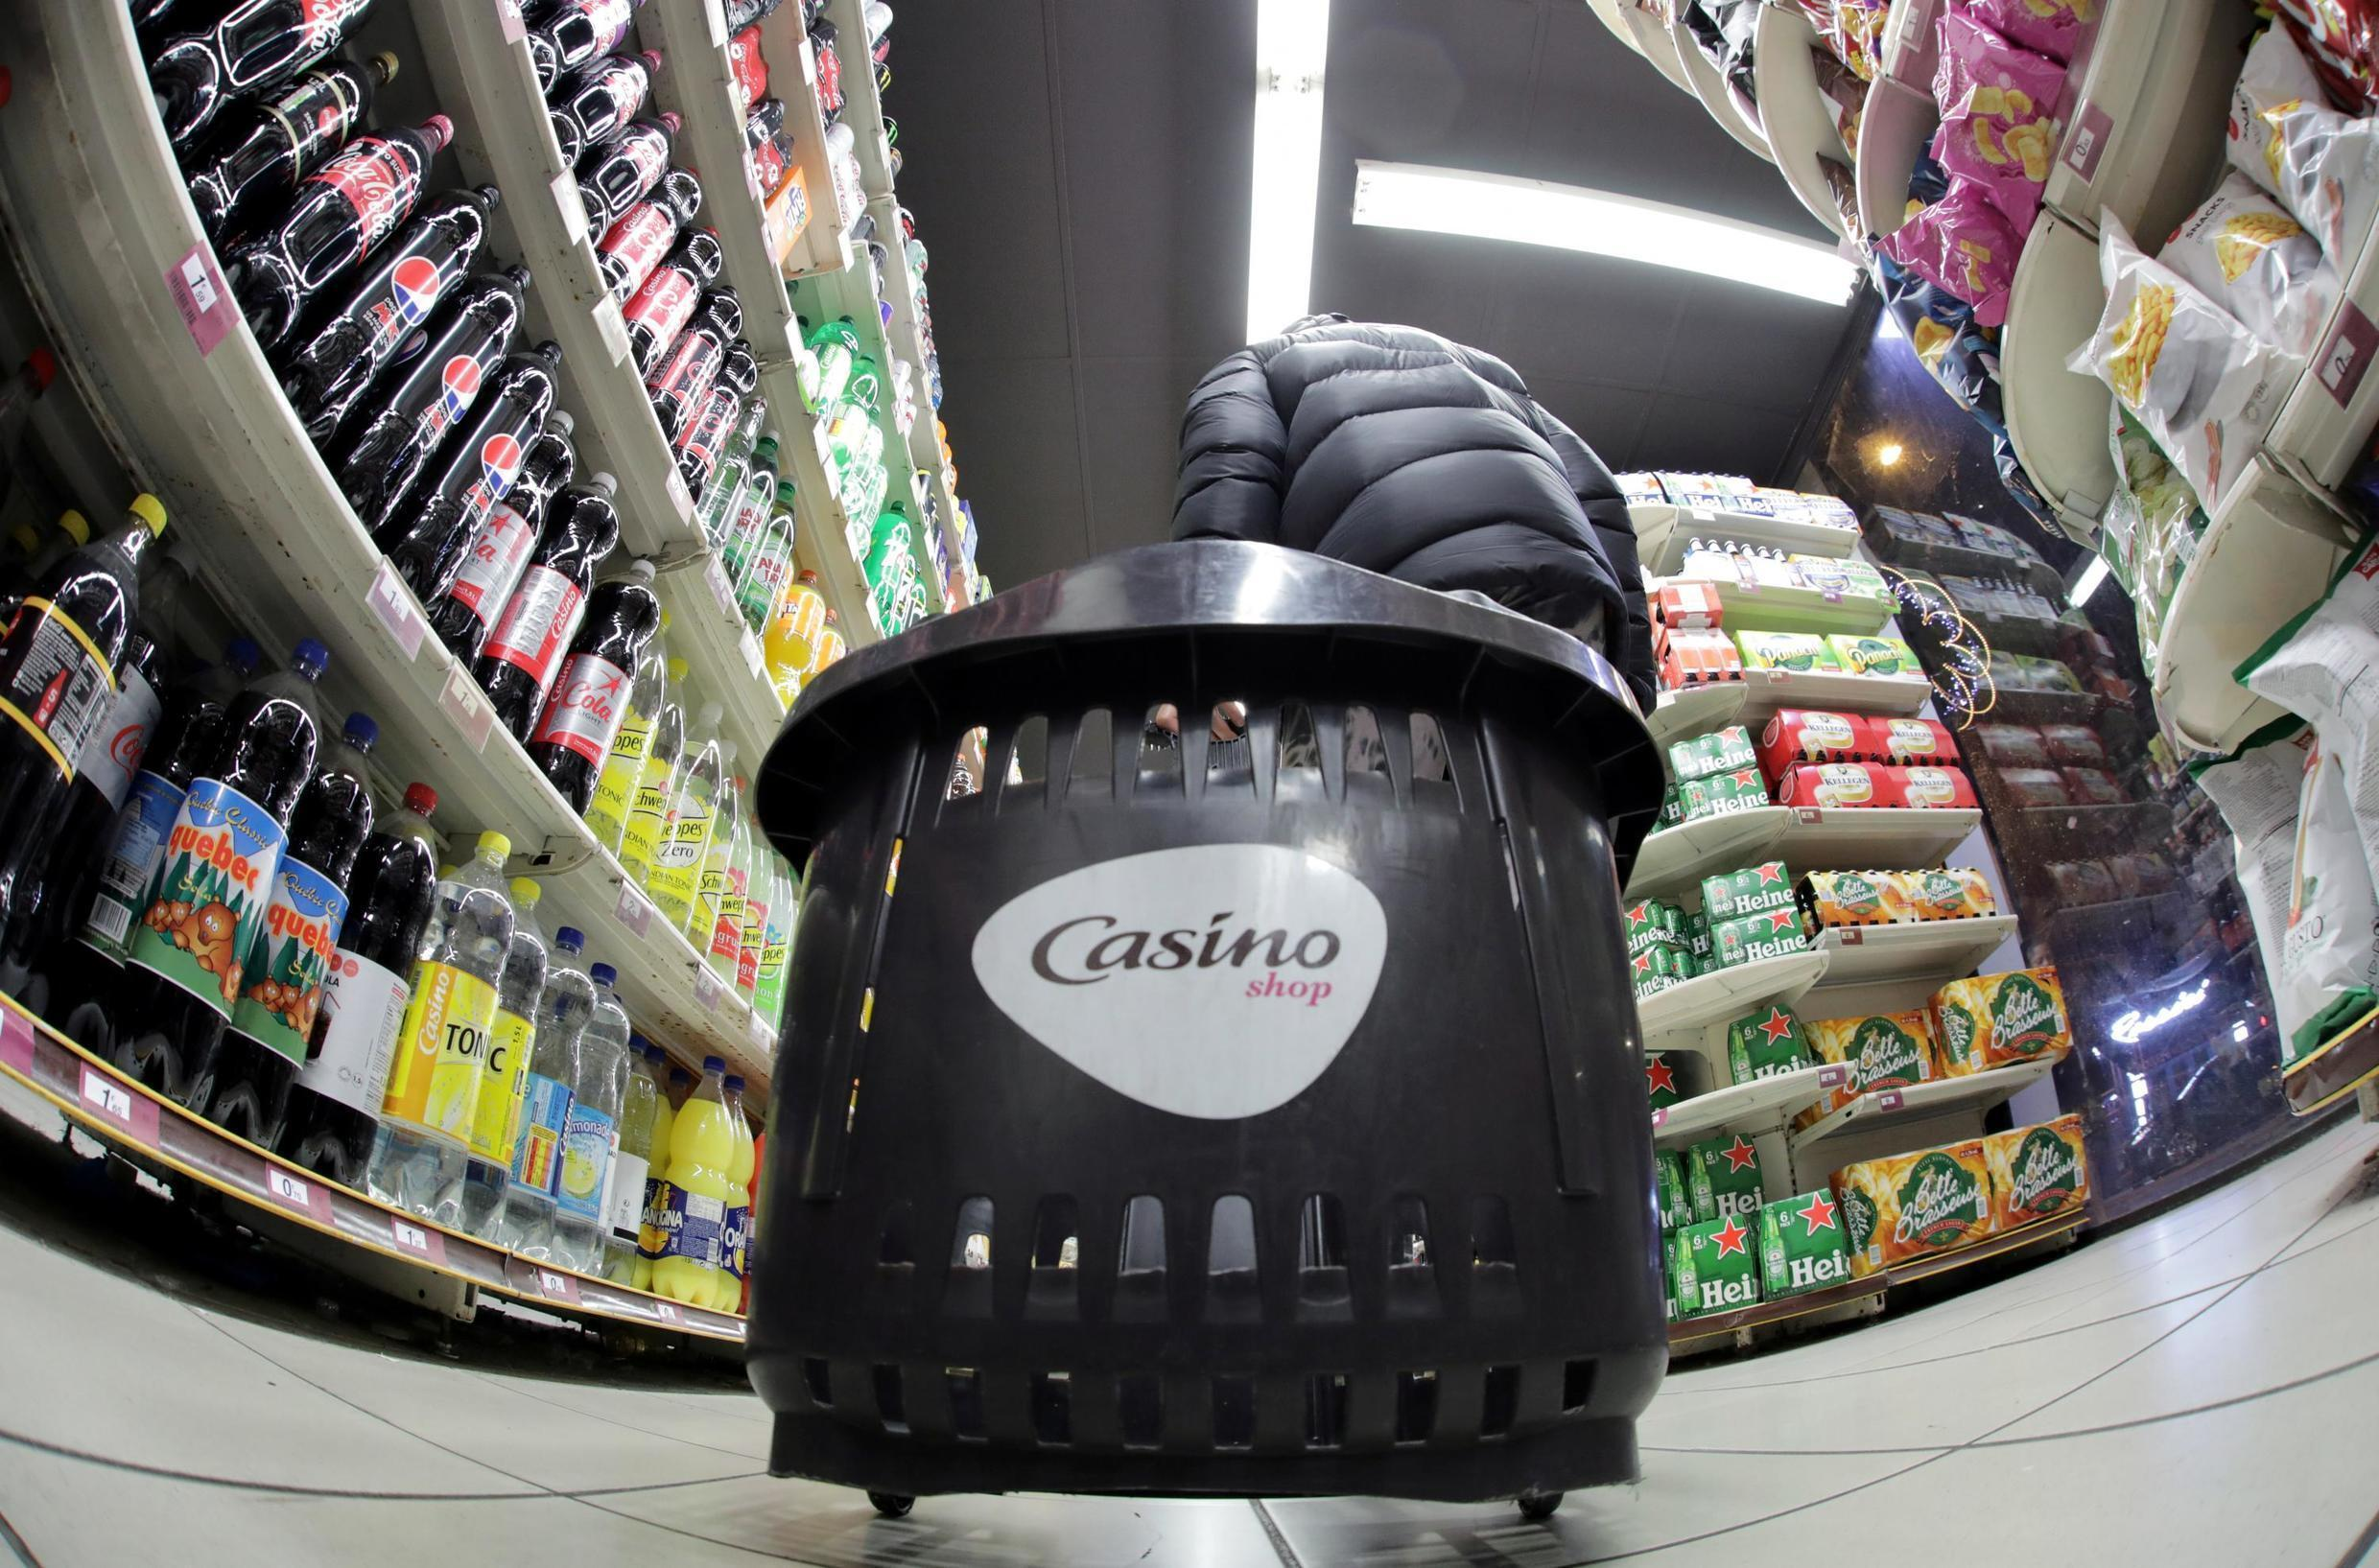 A customer shops in a Casino supermarket in Nice, France, January 15, 2019.